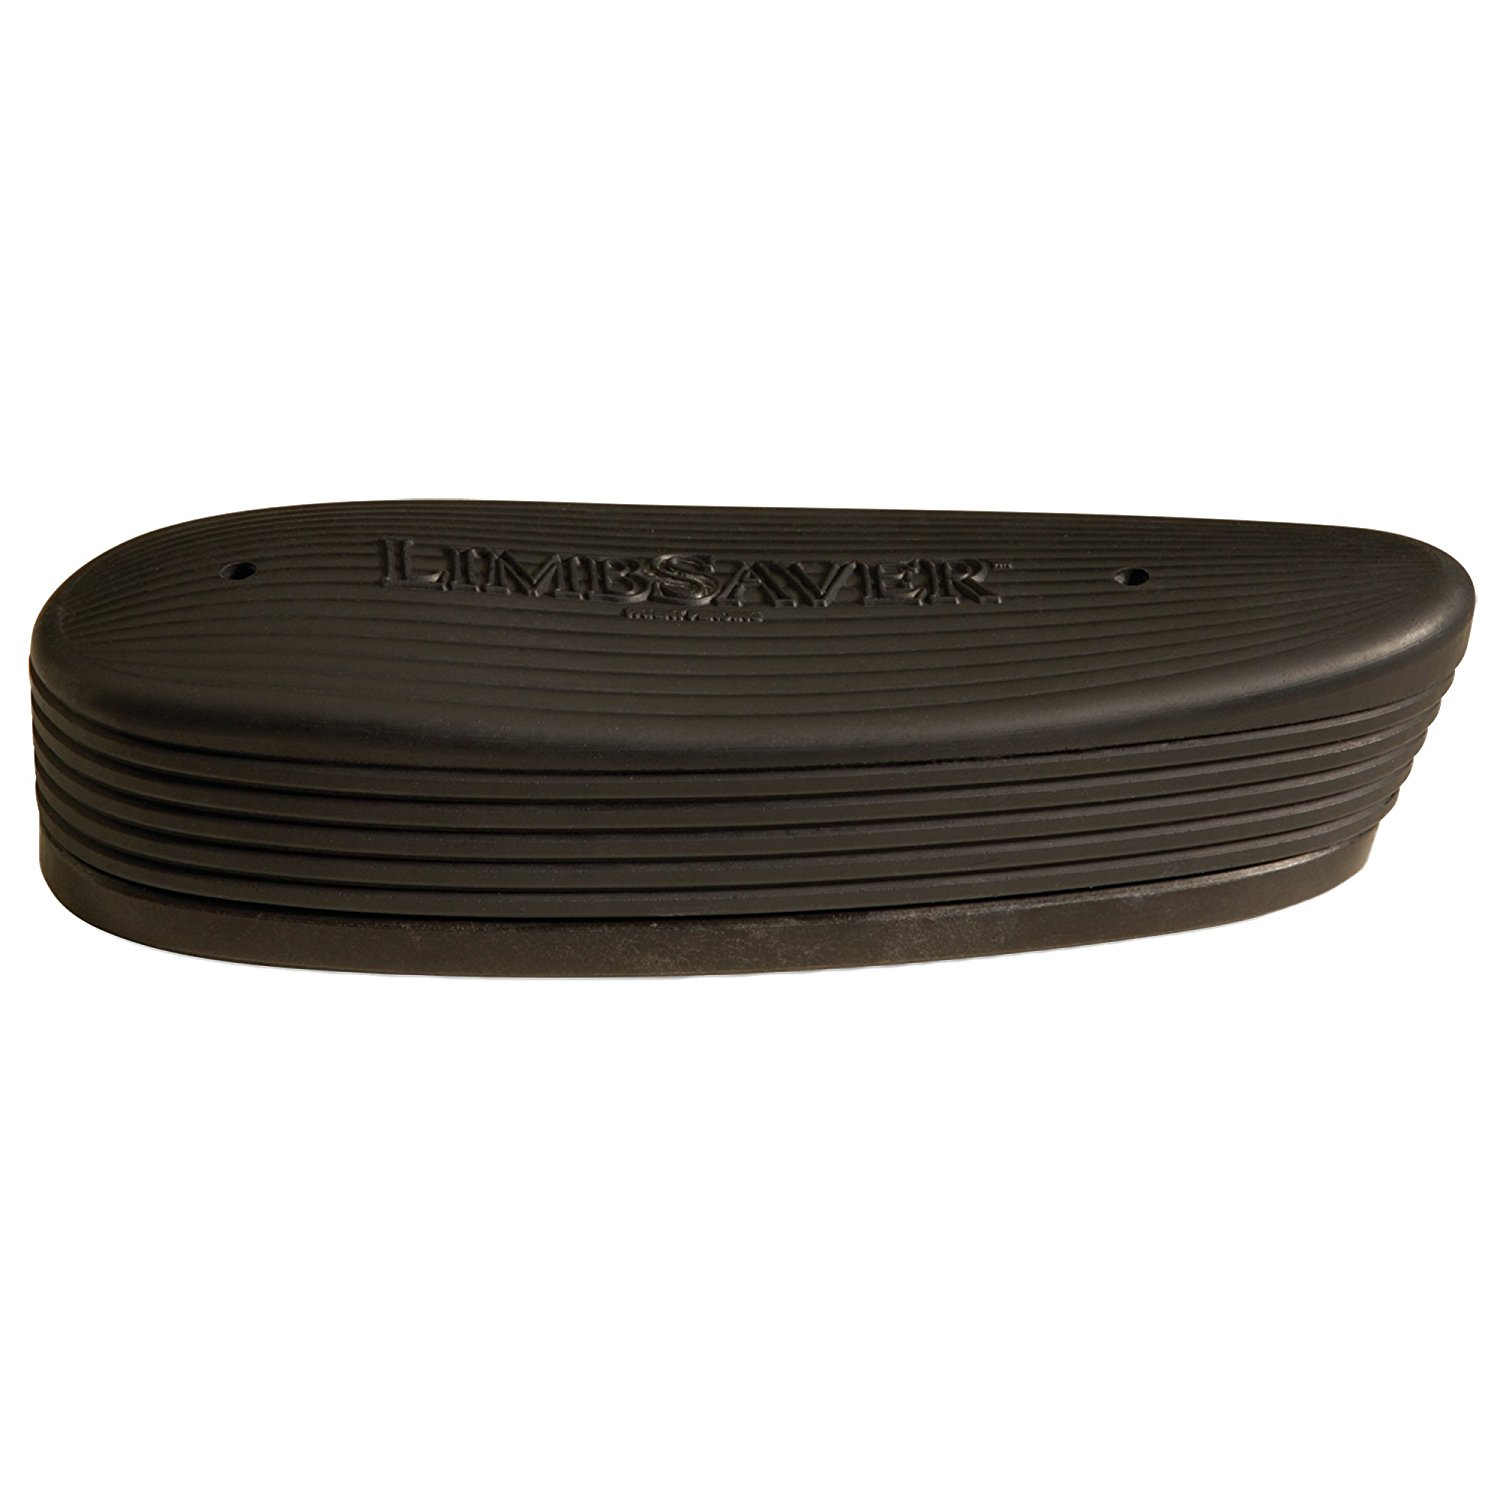 10111 Classic Precision-Fit Recoil Pad for CVA, Remington, Savage Arms, Stevens, Stoeger, and Winchester Models, Model... by